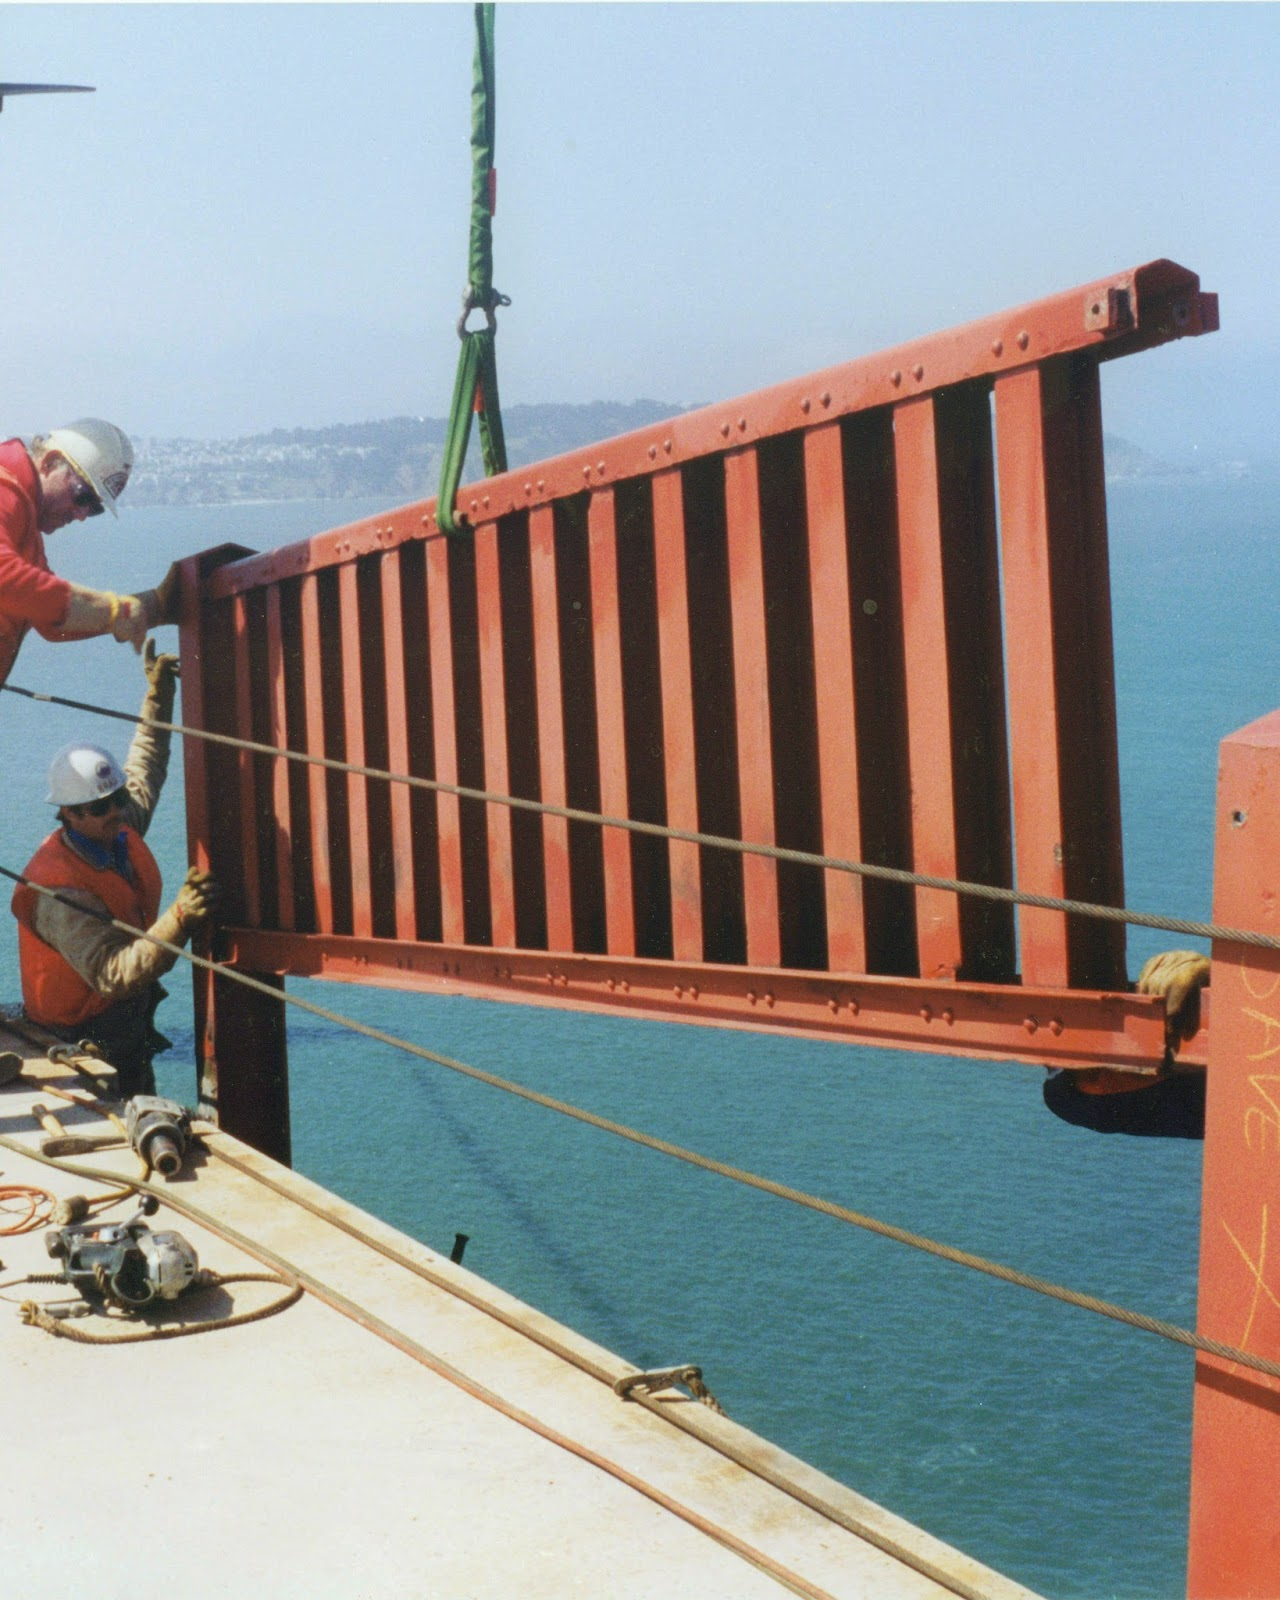 Golden Gate Bridge Handrail Removal